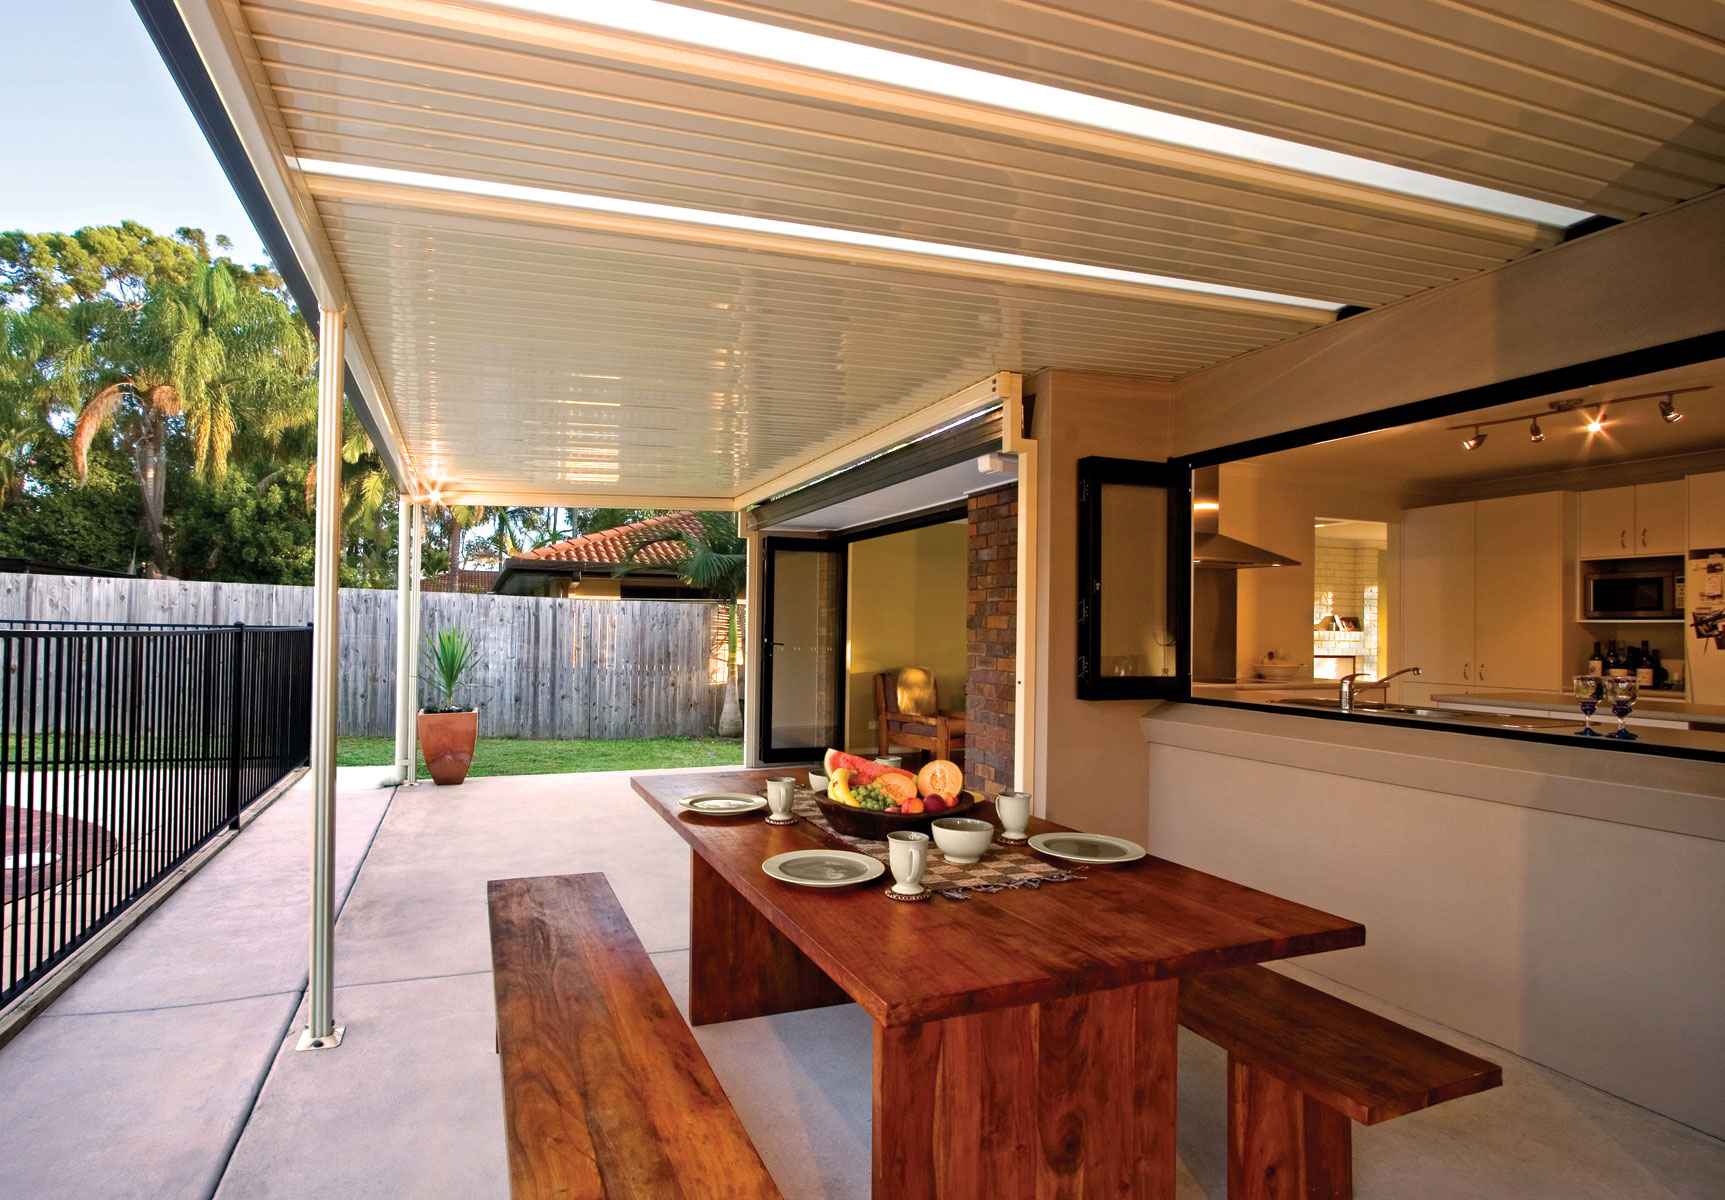 Outback flat stratco nz - Outdoor patio design ideas ...